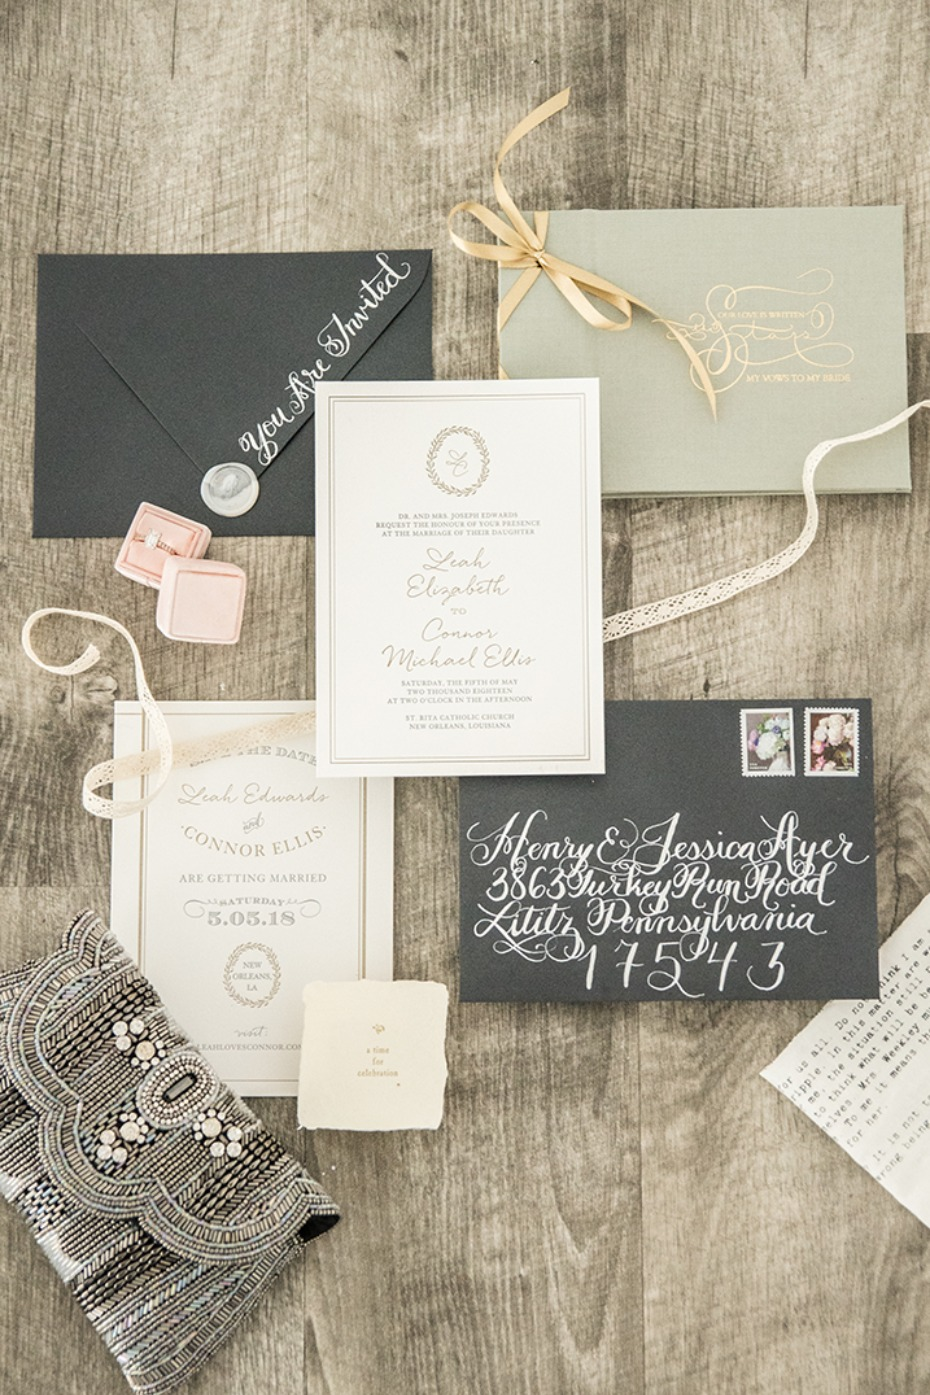 classic wedding invitation style with a modern flair